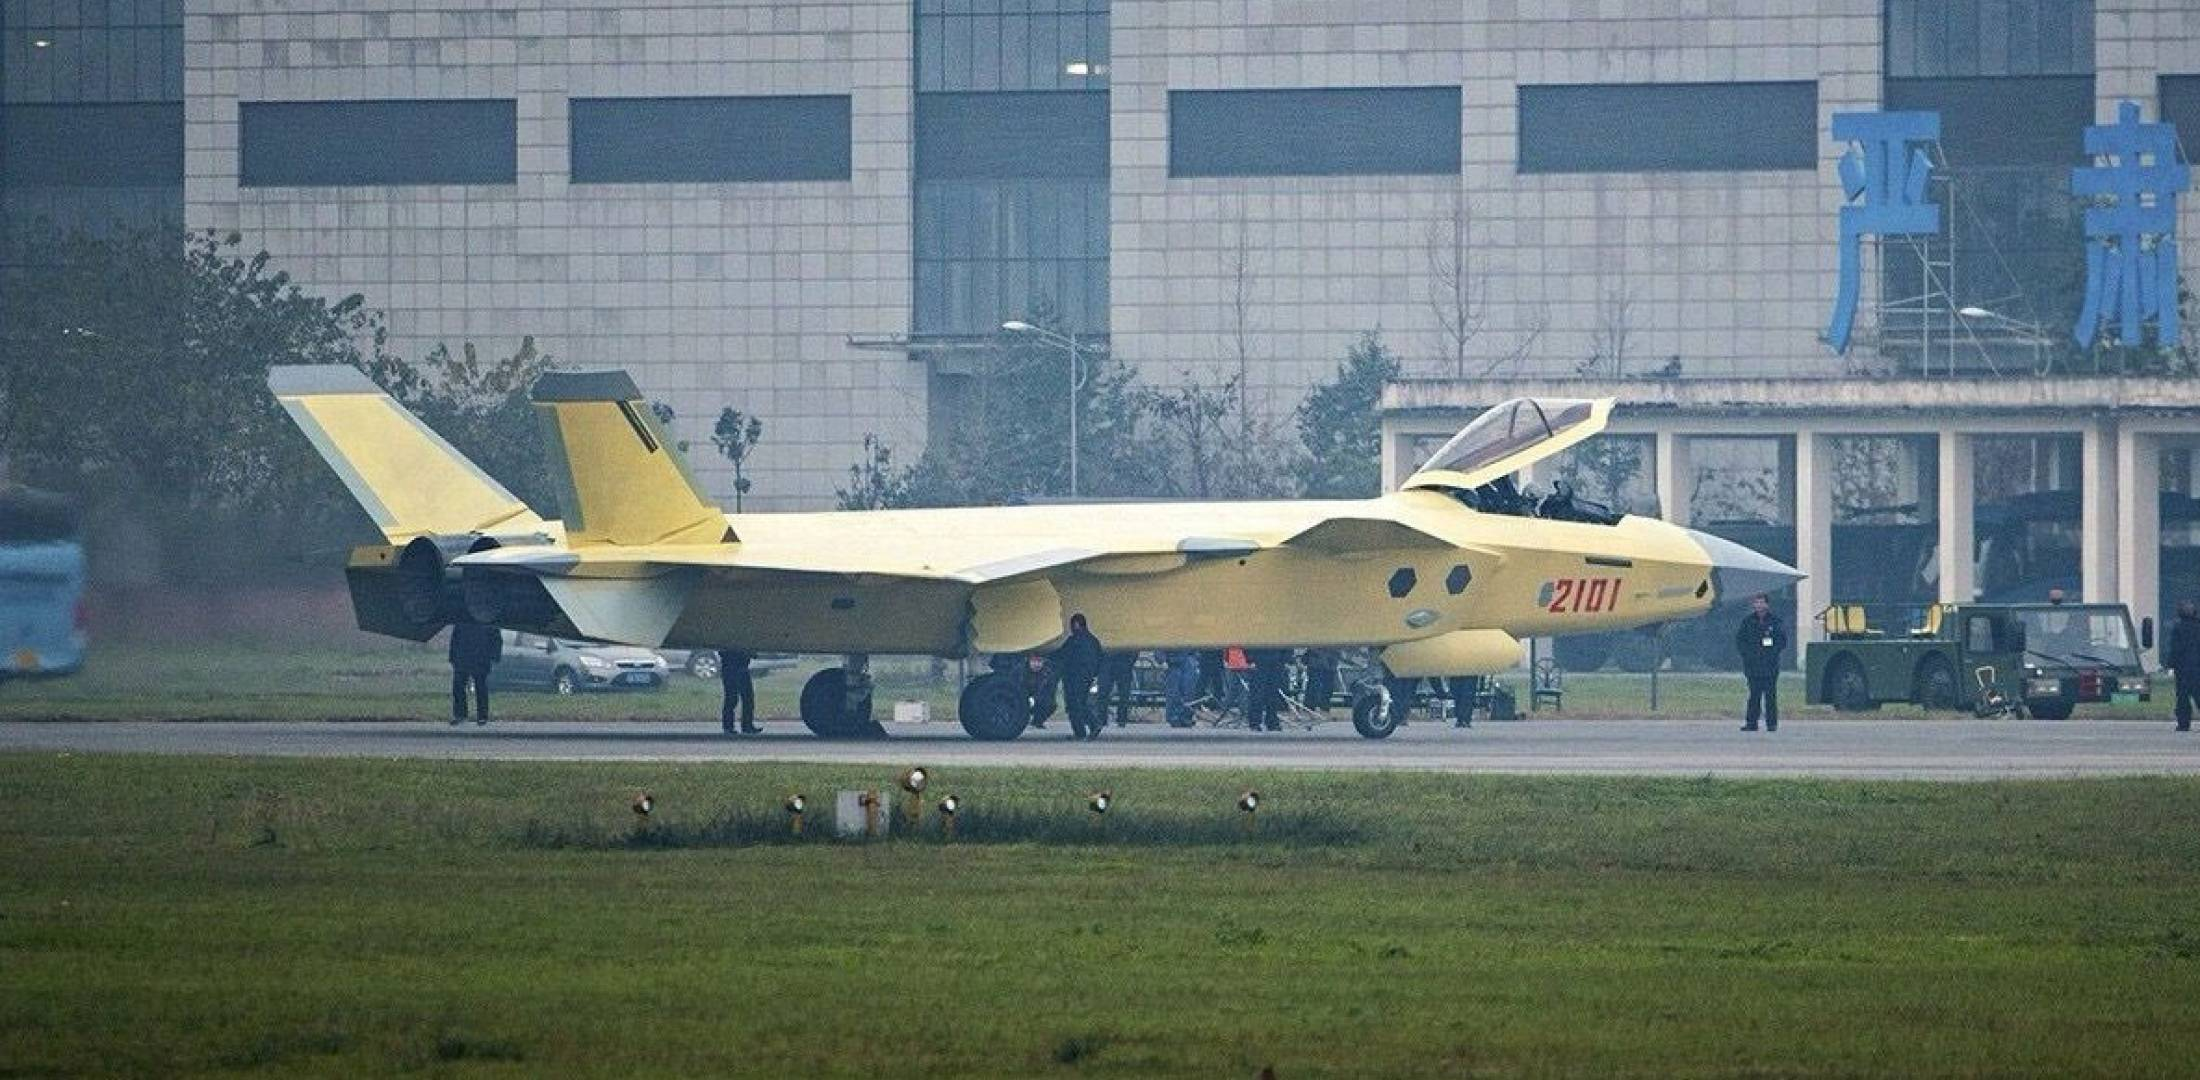 J-20 fighter on the ground